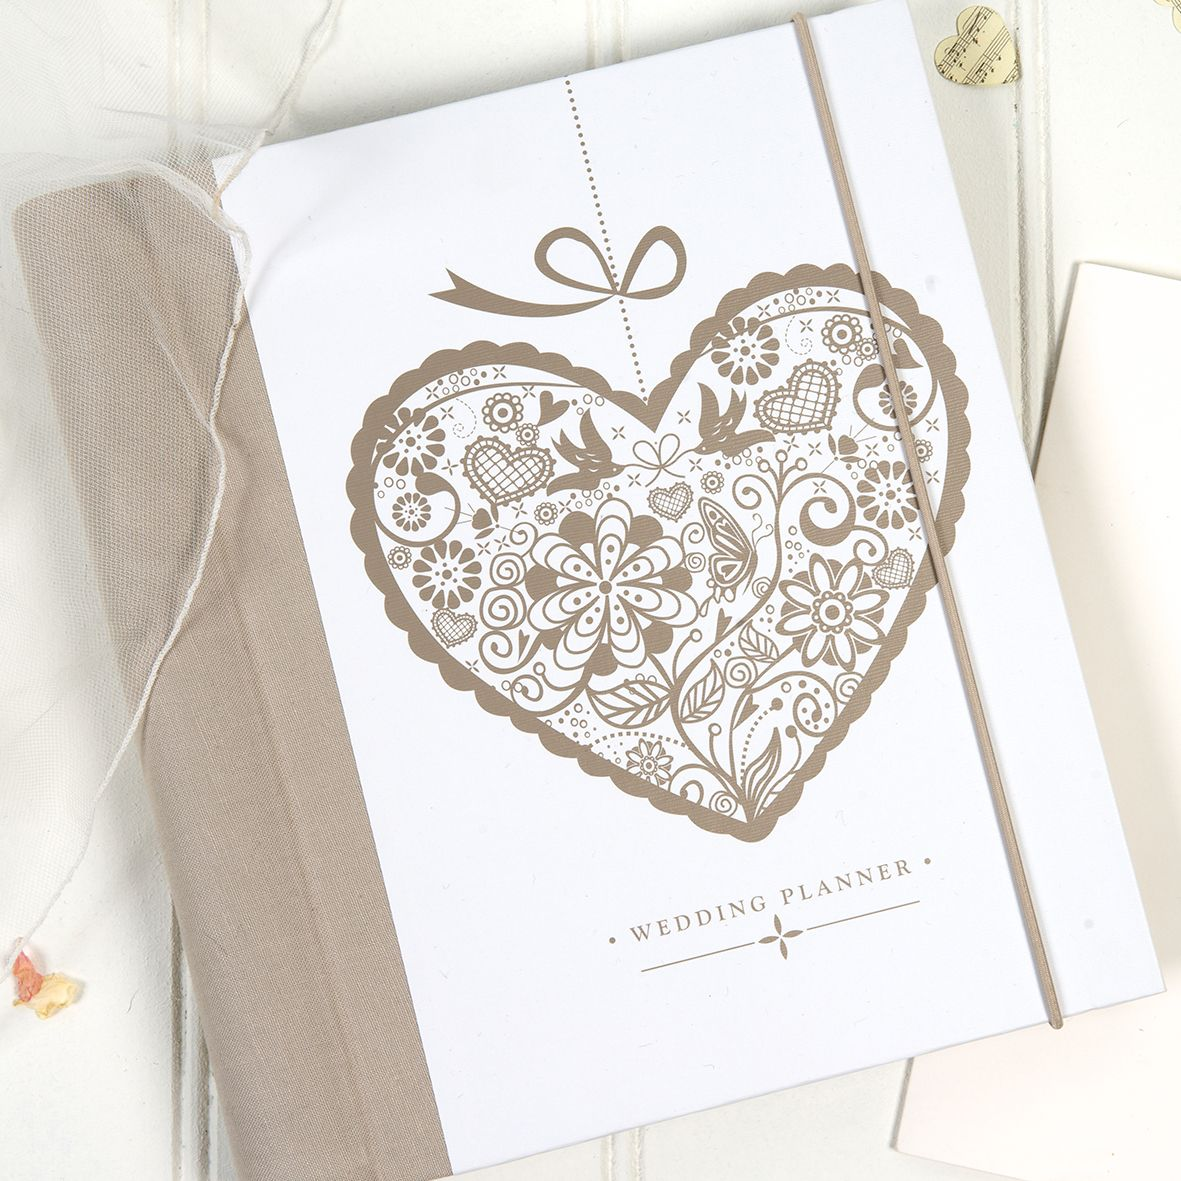 Wedding Planners and Notebooks category image